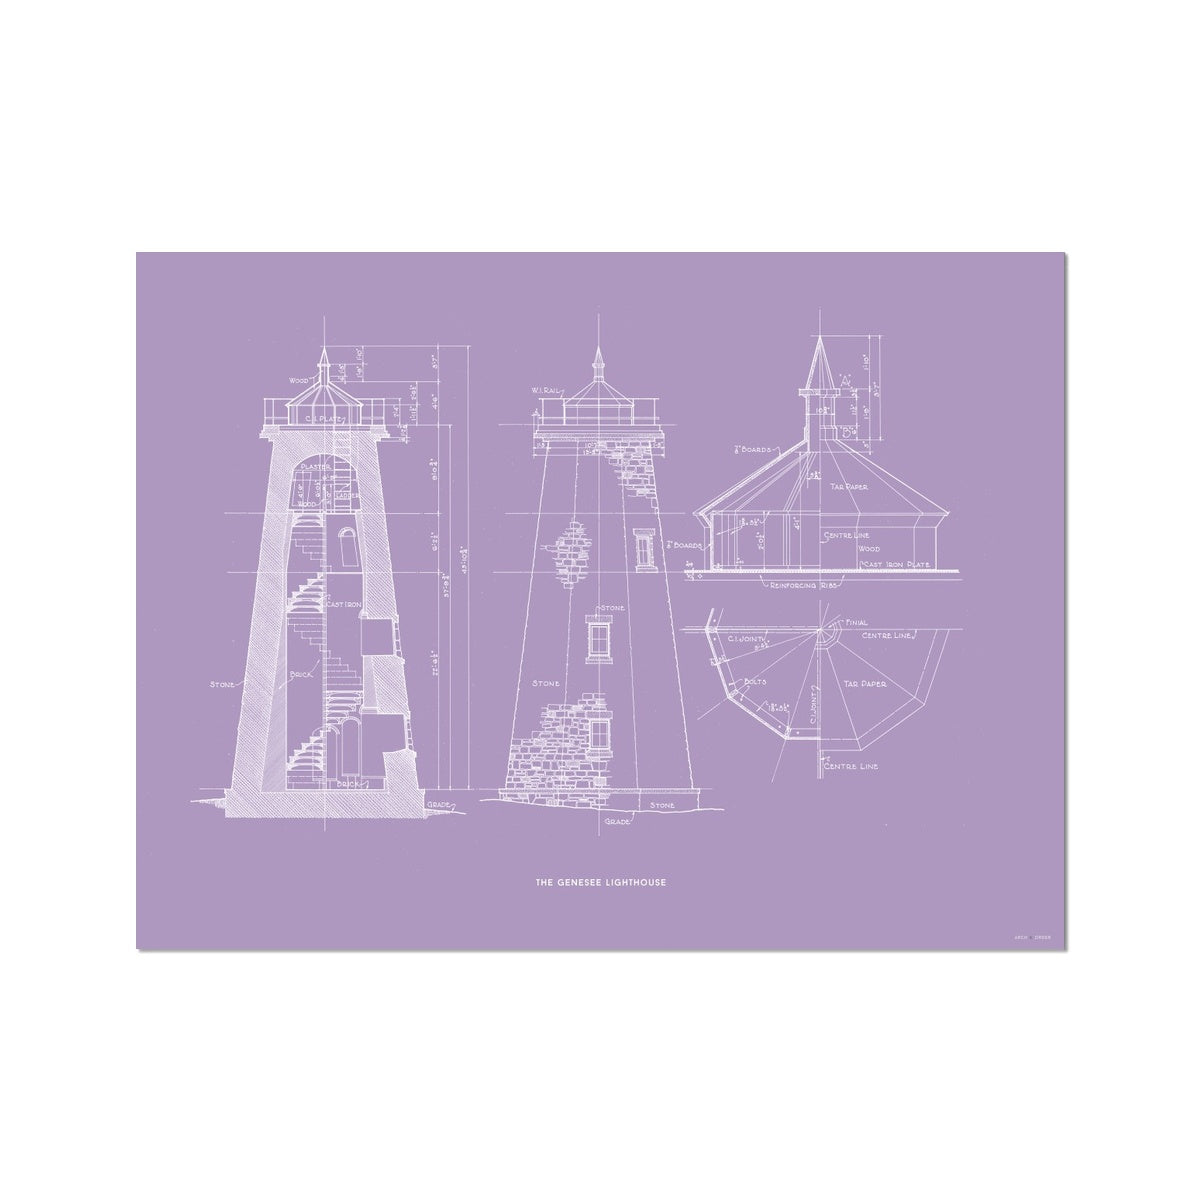 The Genesee Lighthouse - South Elevation and Cross Section - Lavender - German Etching Print